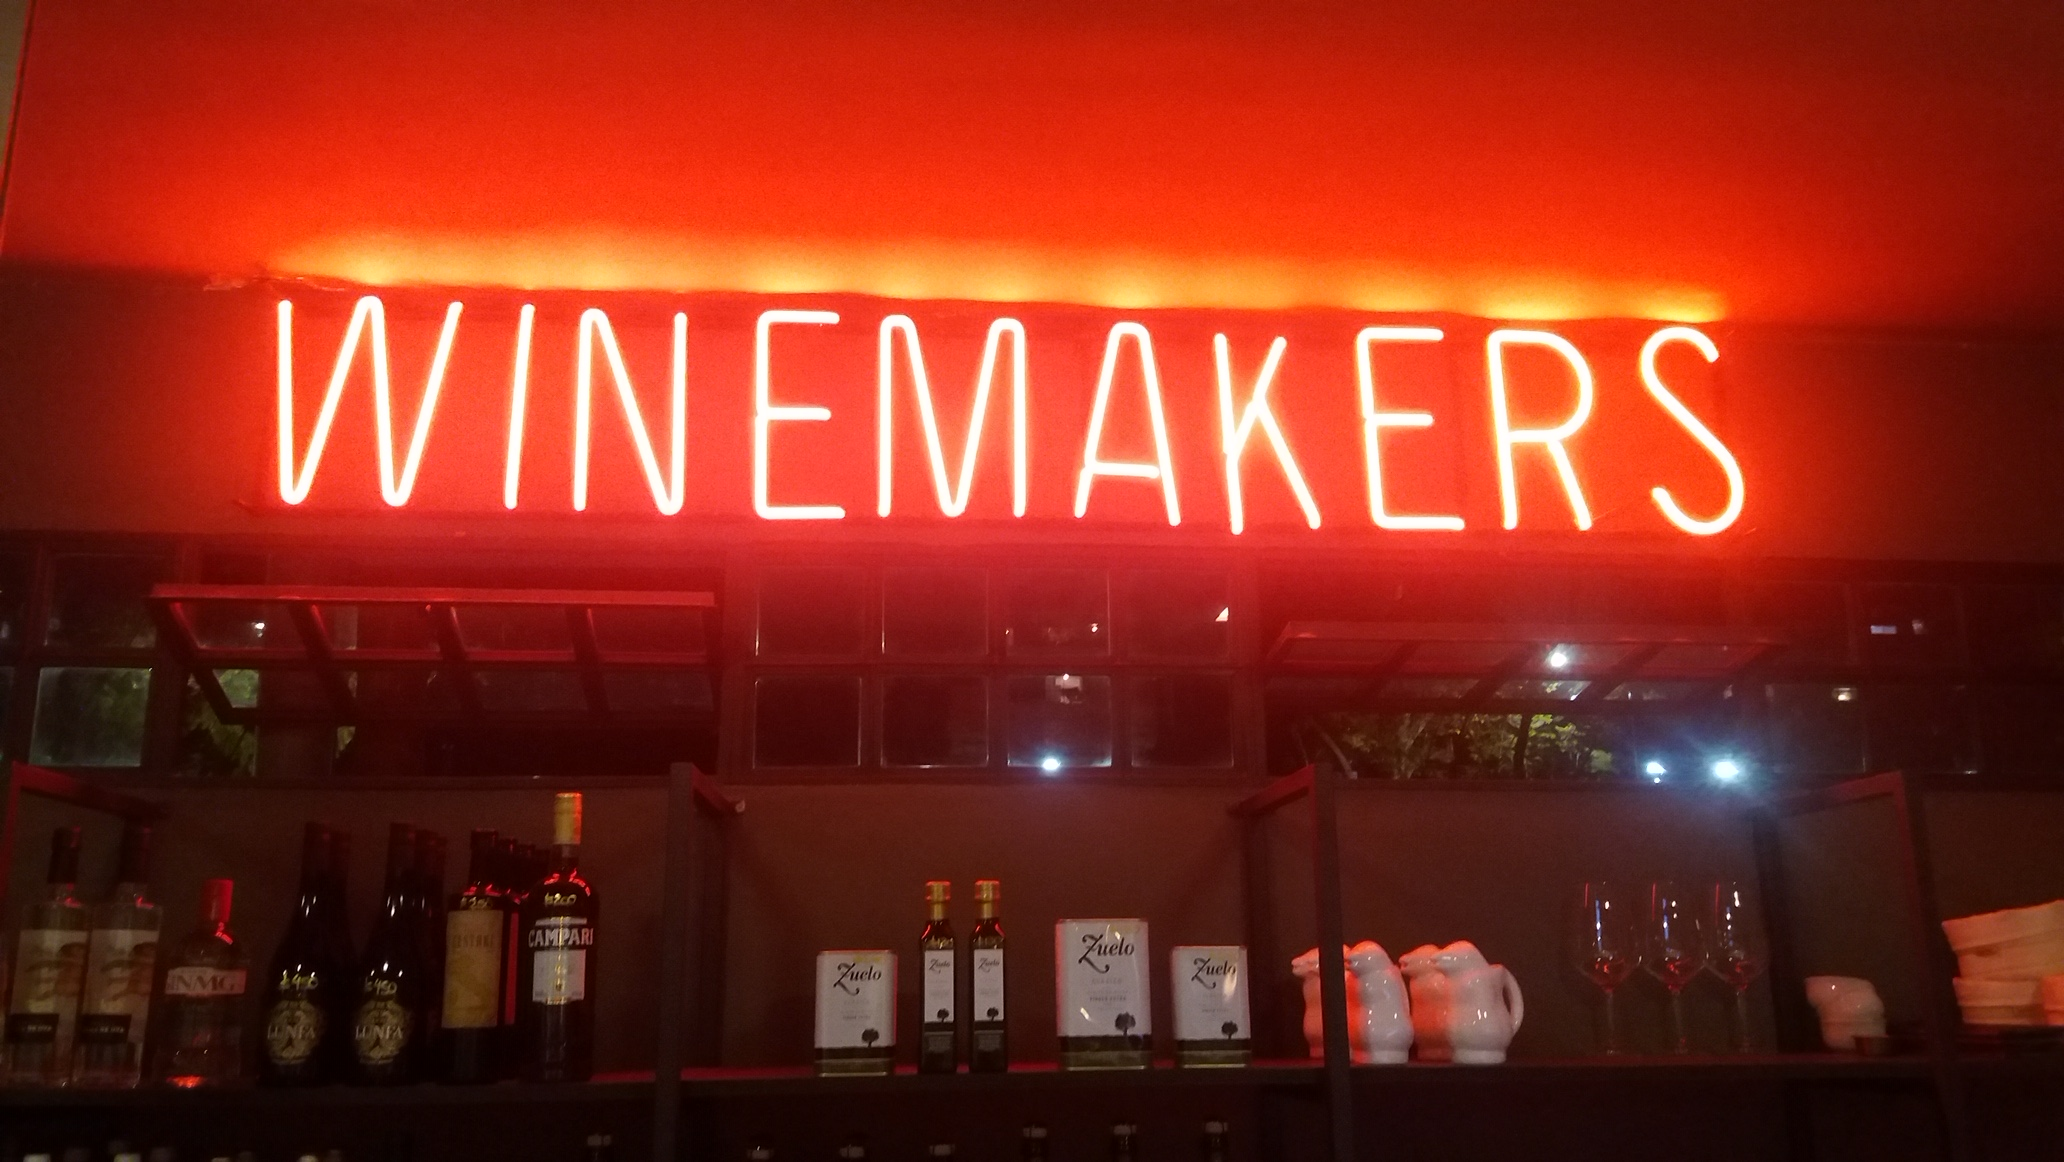 Winemakers en Belgrano